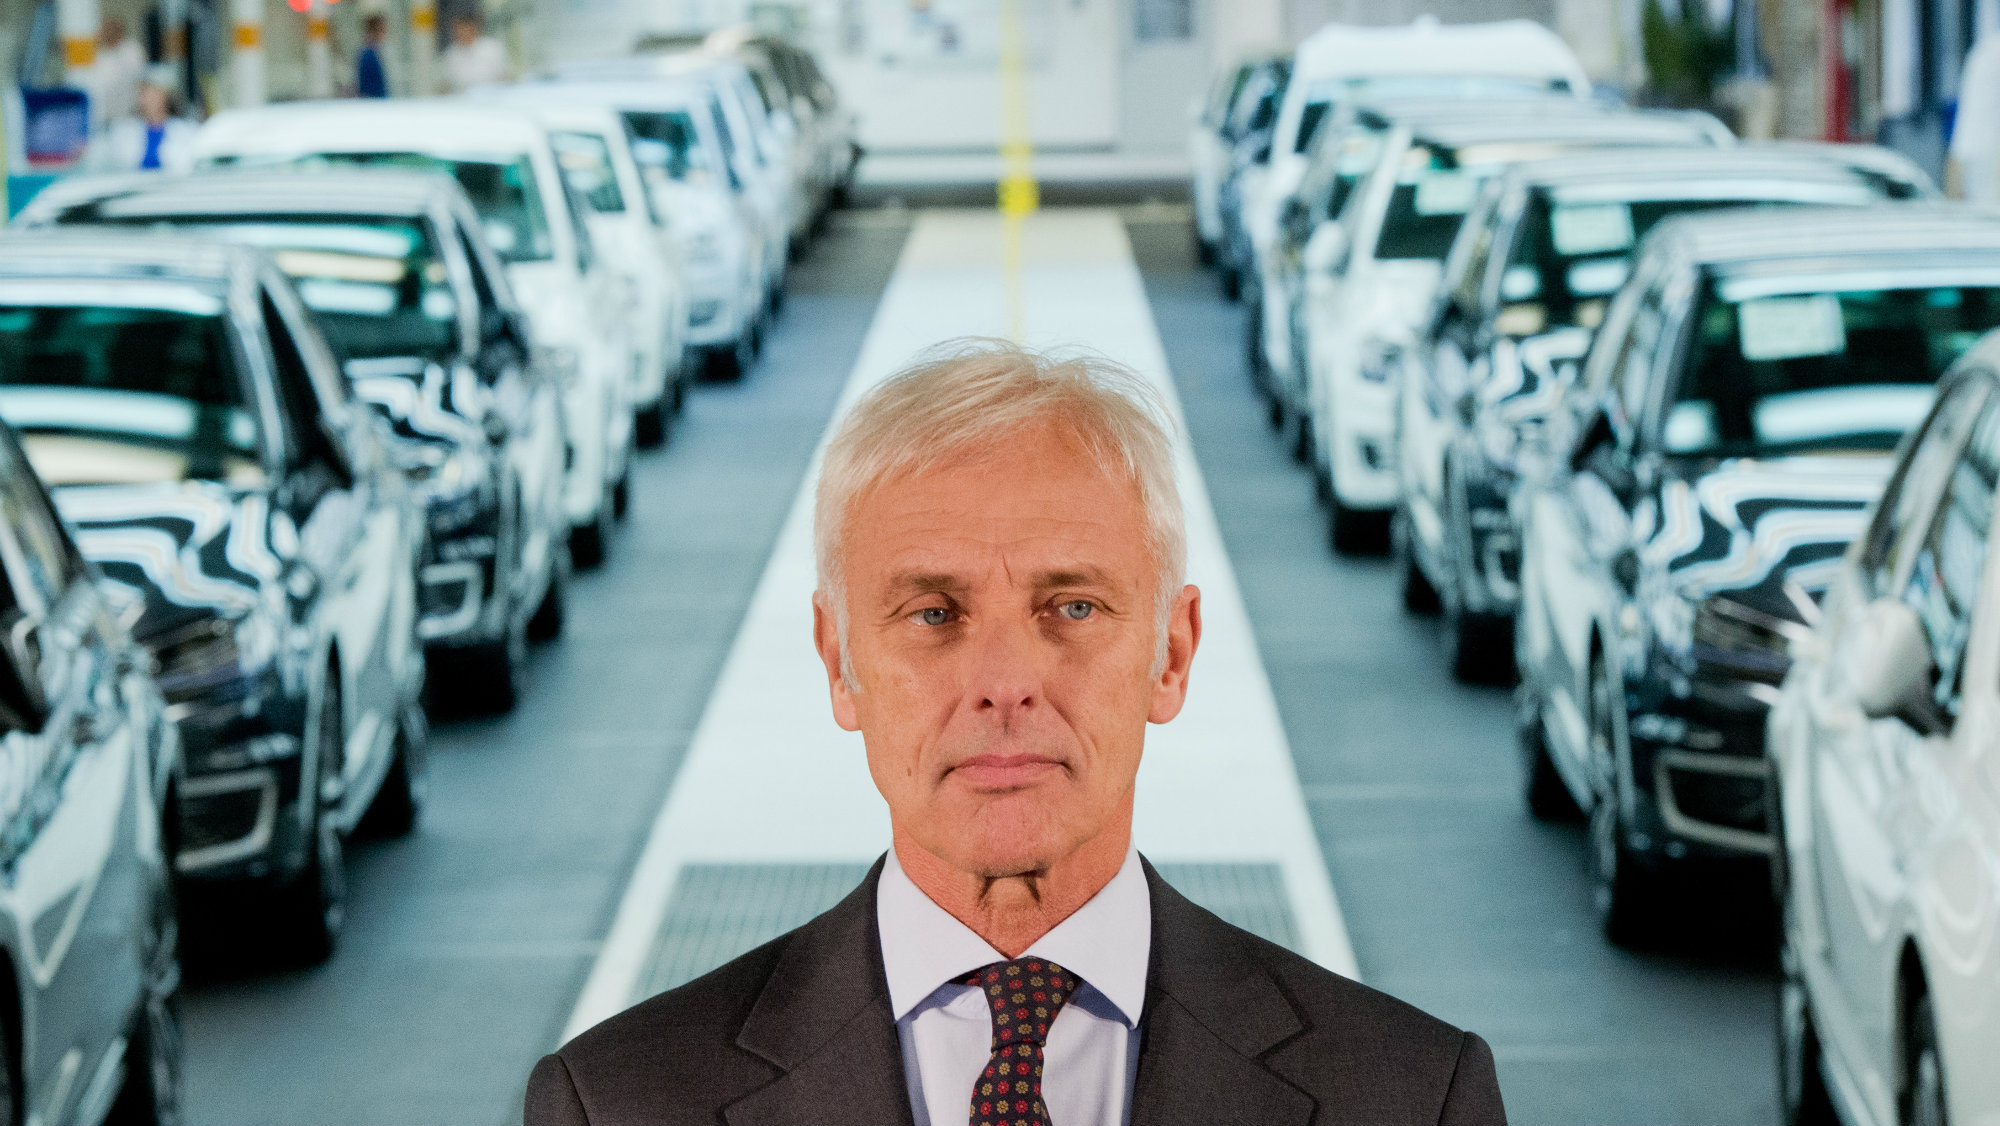 Matthias Mueller, CEO of Volkswagen AG, stands after a tour in the Volkswagen plant in Wolfsburg, Germany, 21 October 2015.